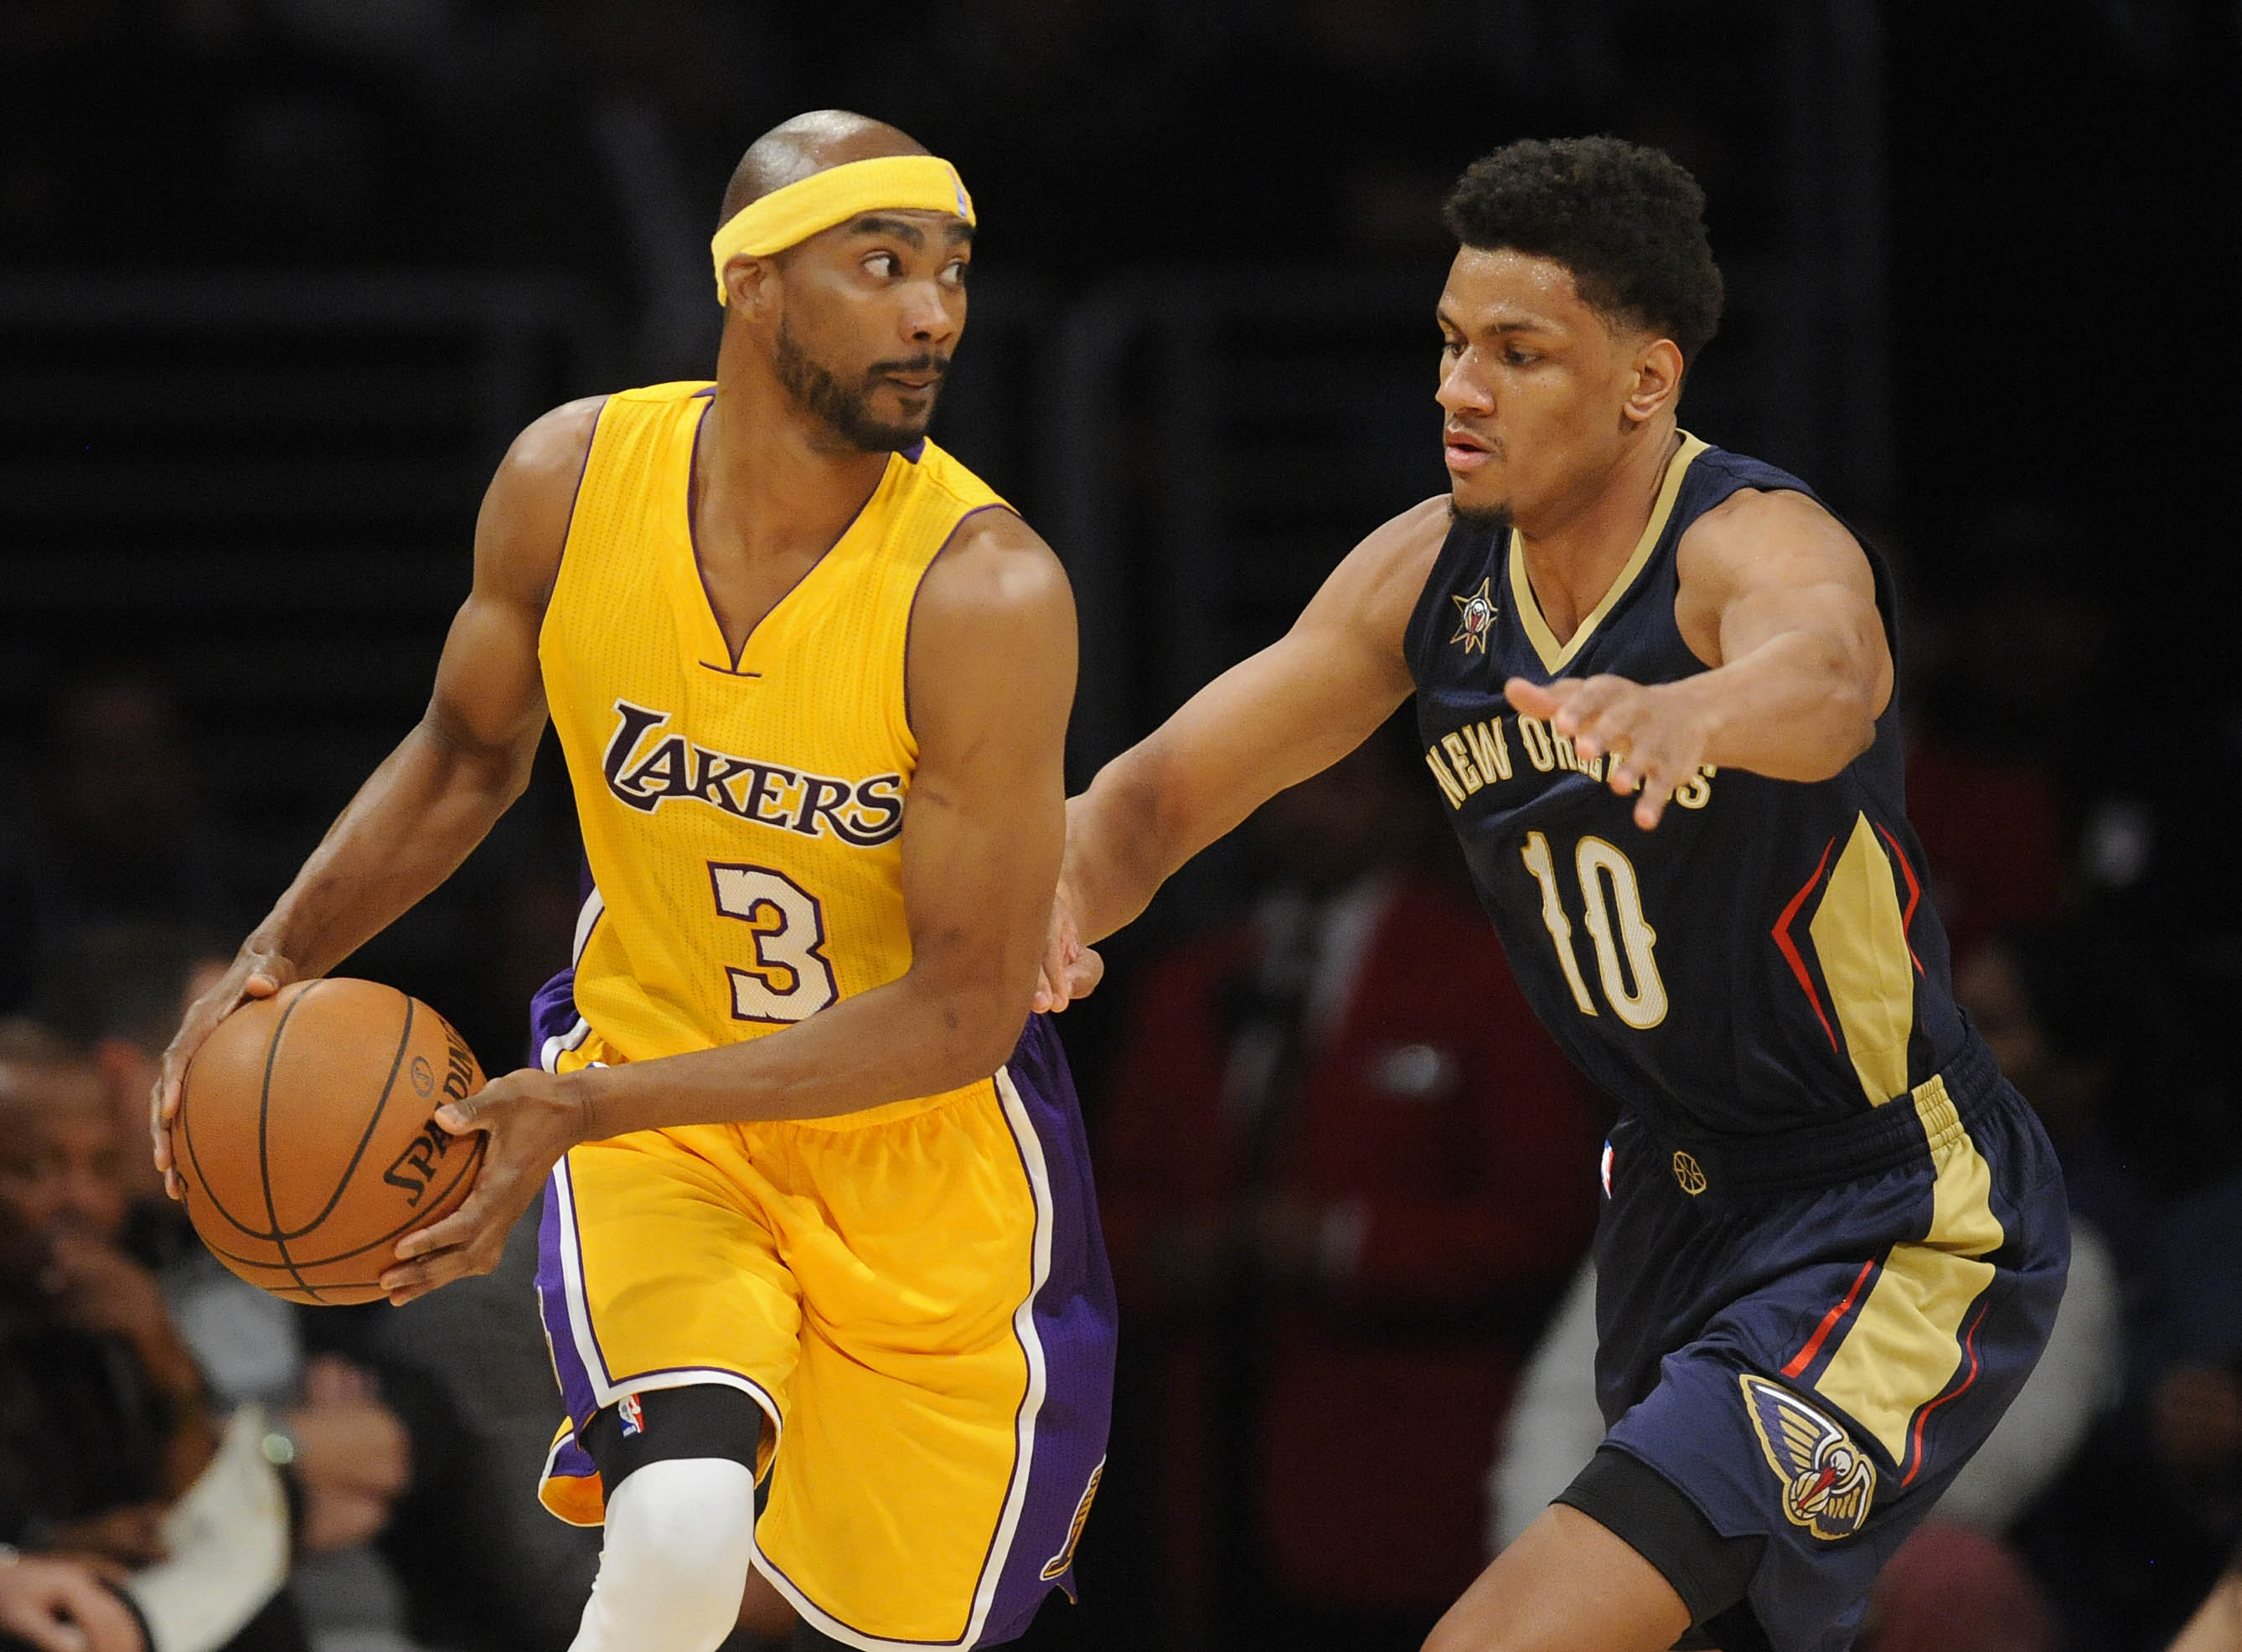 https://cdn.fansided.com/wp-content/uploads/usat-images/2016/04/10007060-nba-new-orleans-pelicans-at-los-angeles-lakers.jpeg